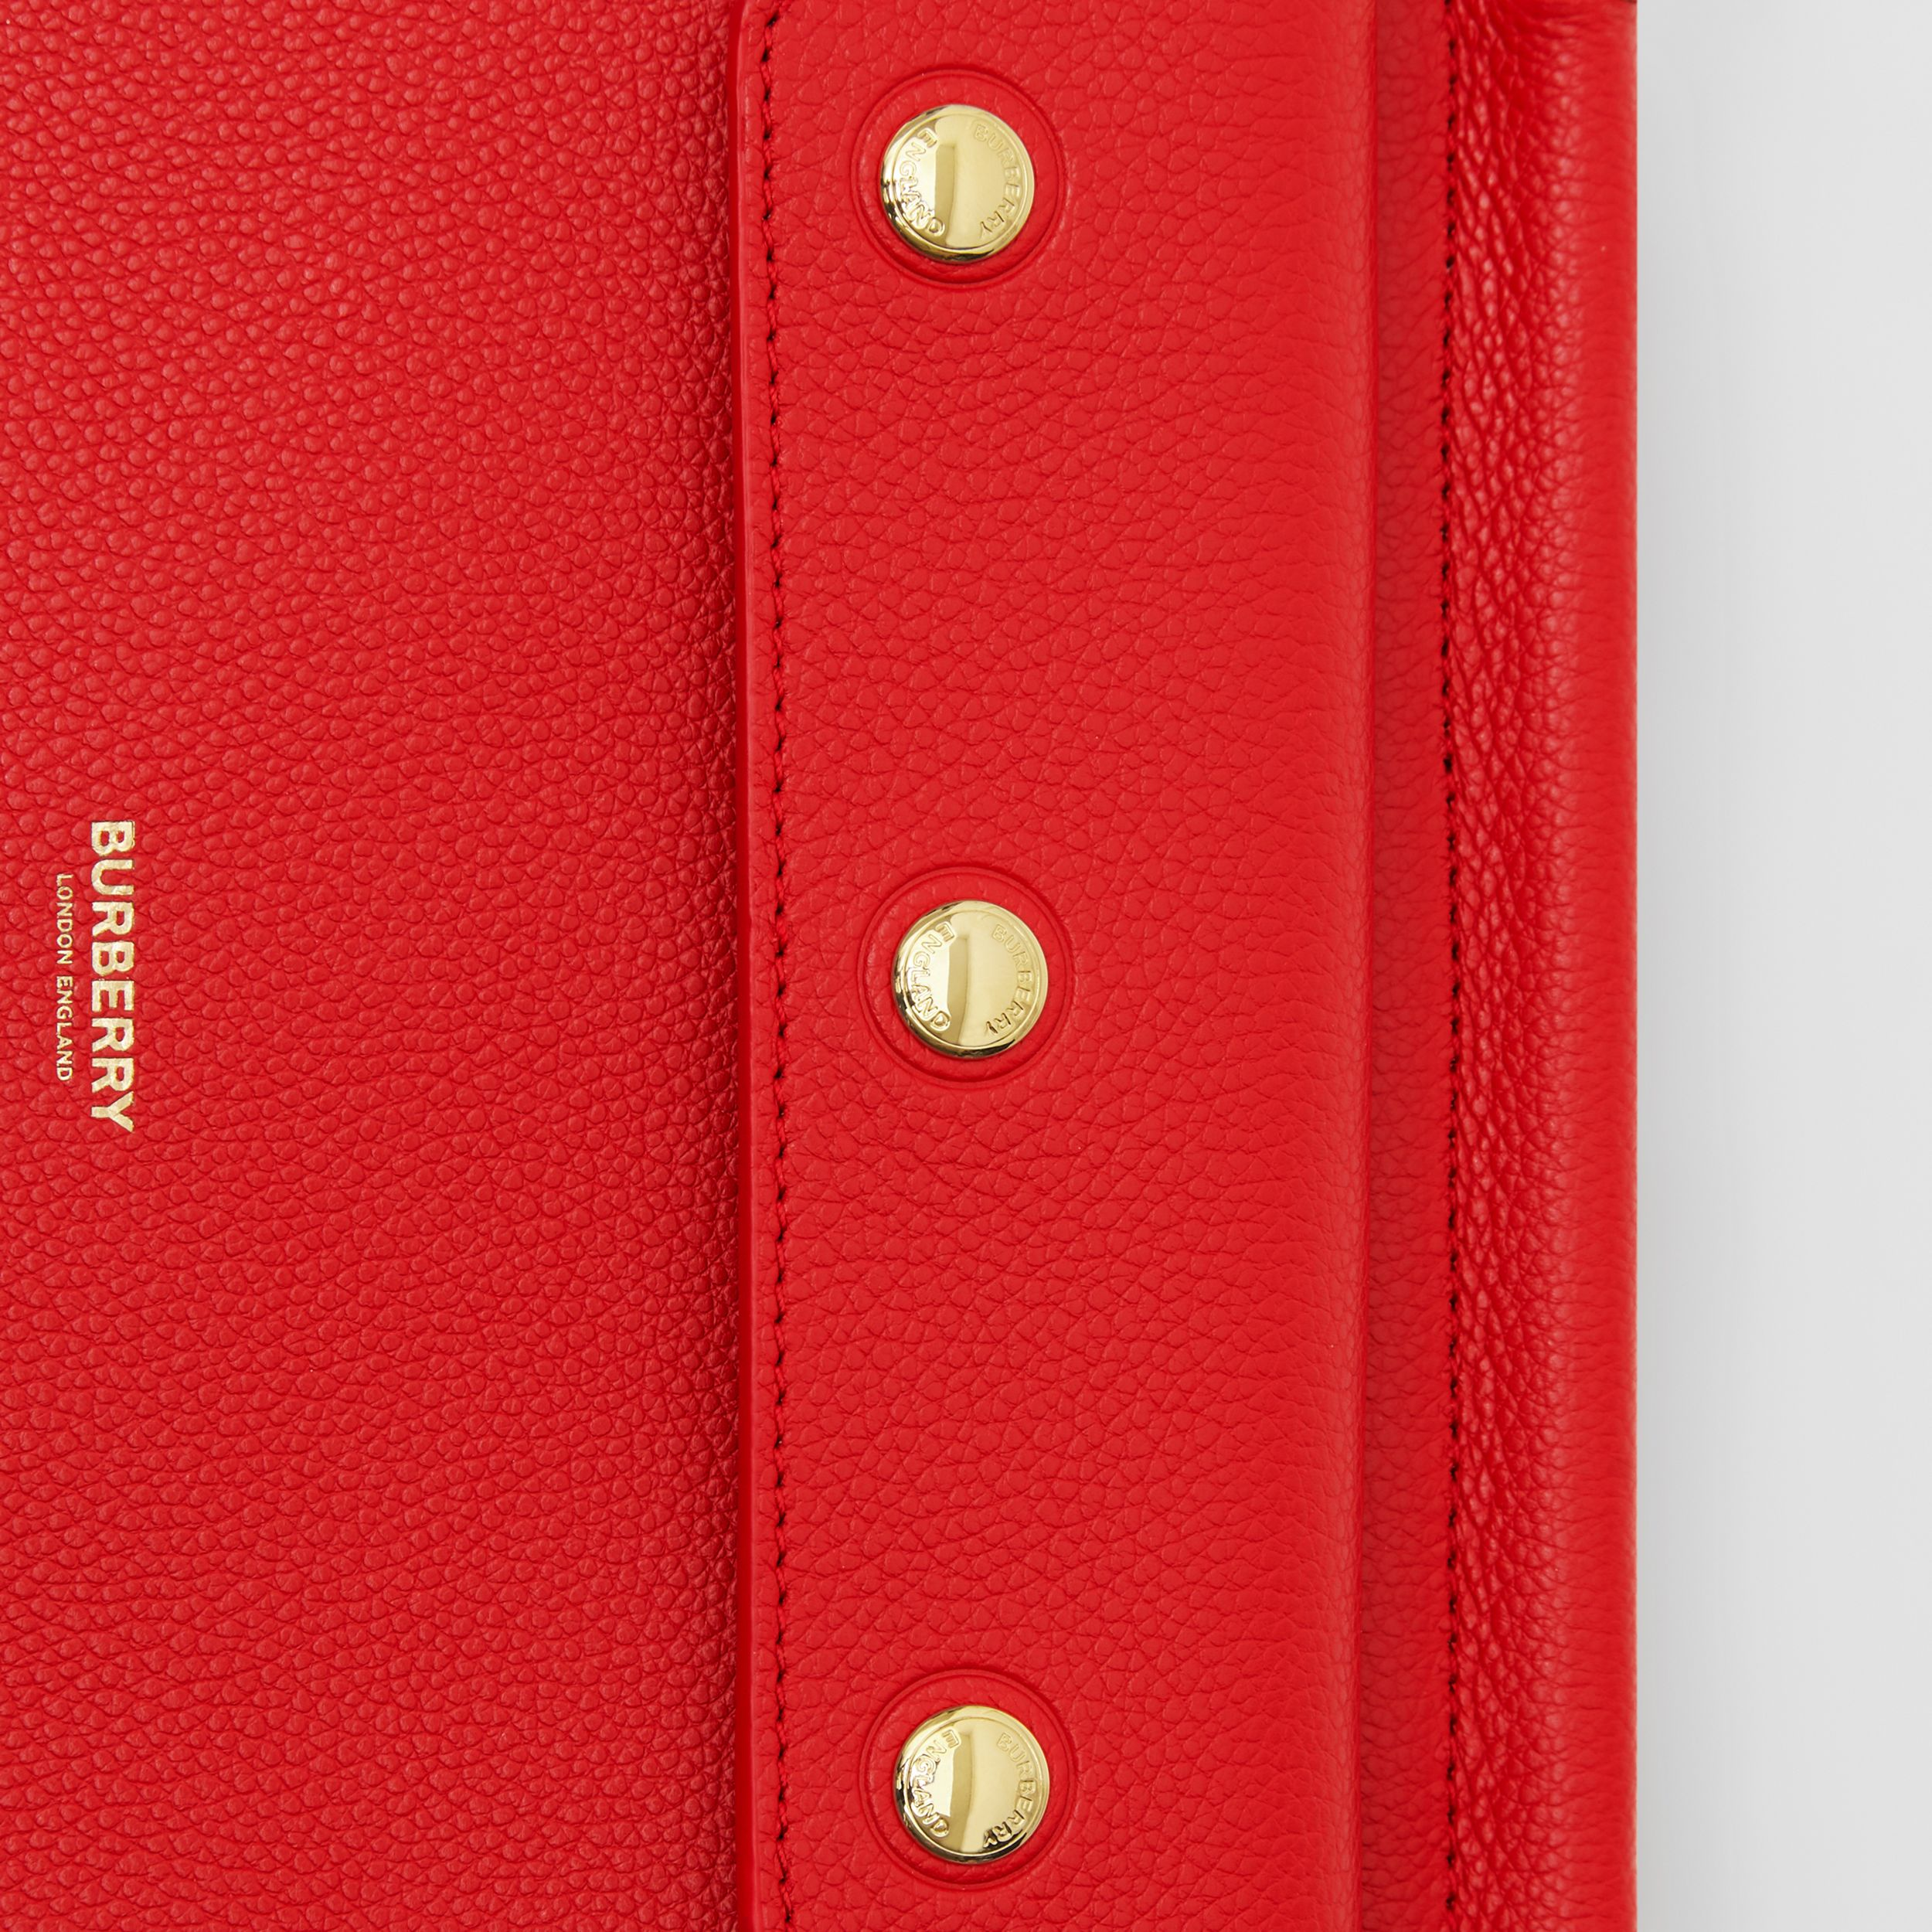 Mini Leather Title Bag with Pocket Detail in Bright Military Red - Women | Burberry Australia - 2